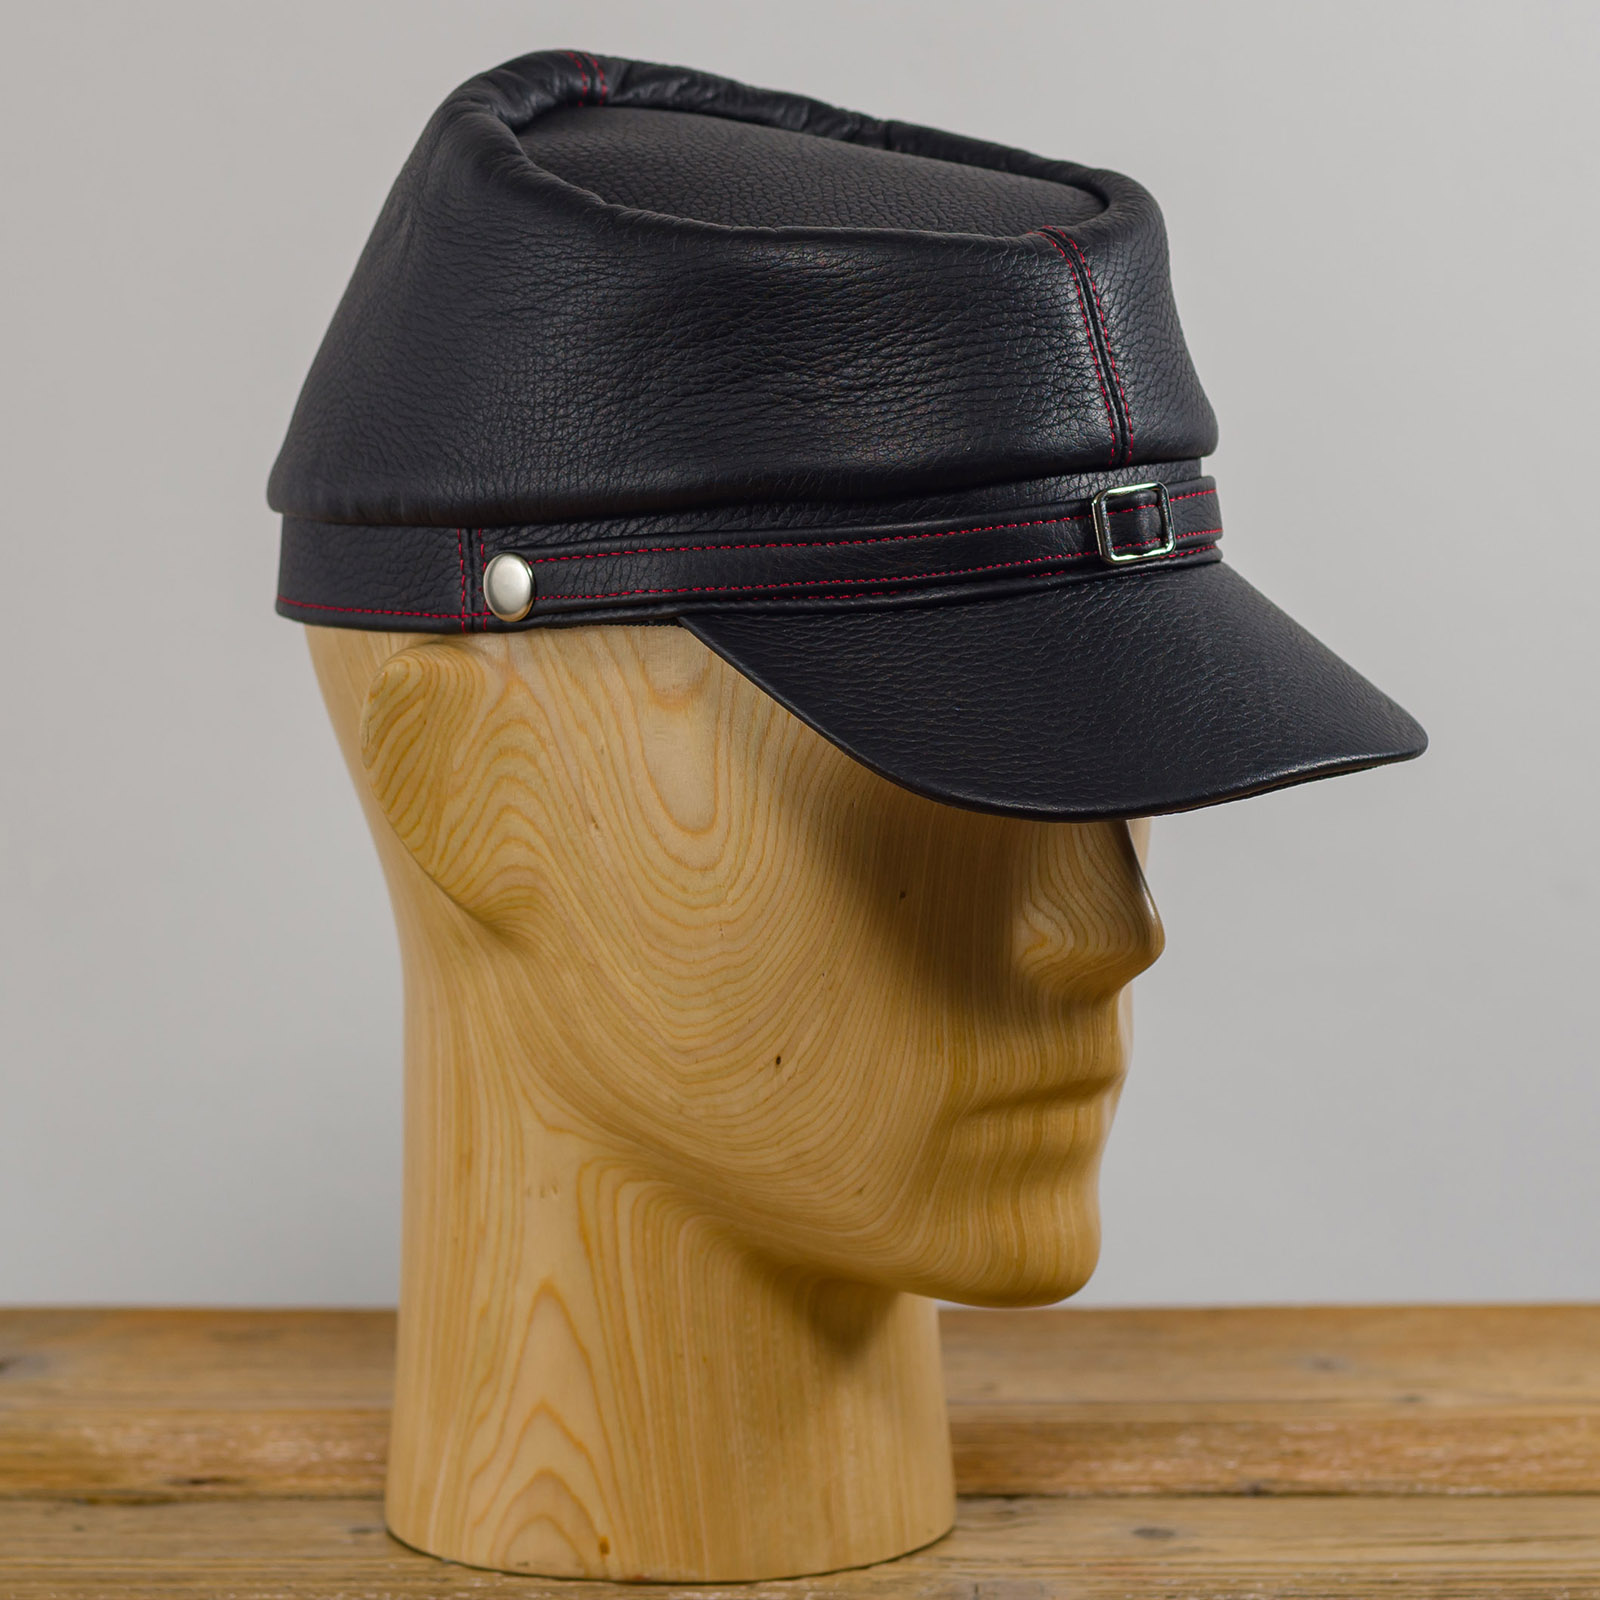 Leather kepi cap american civil war replica secession confederate union army military officers collectible foreign legion hat